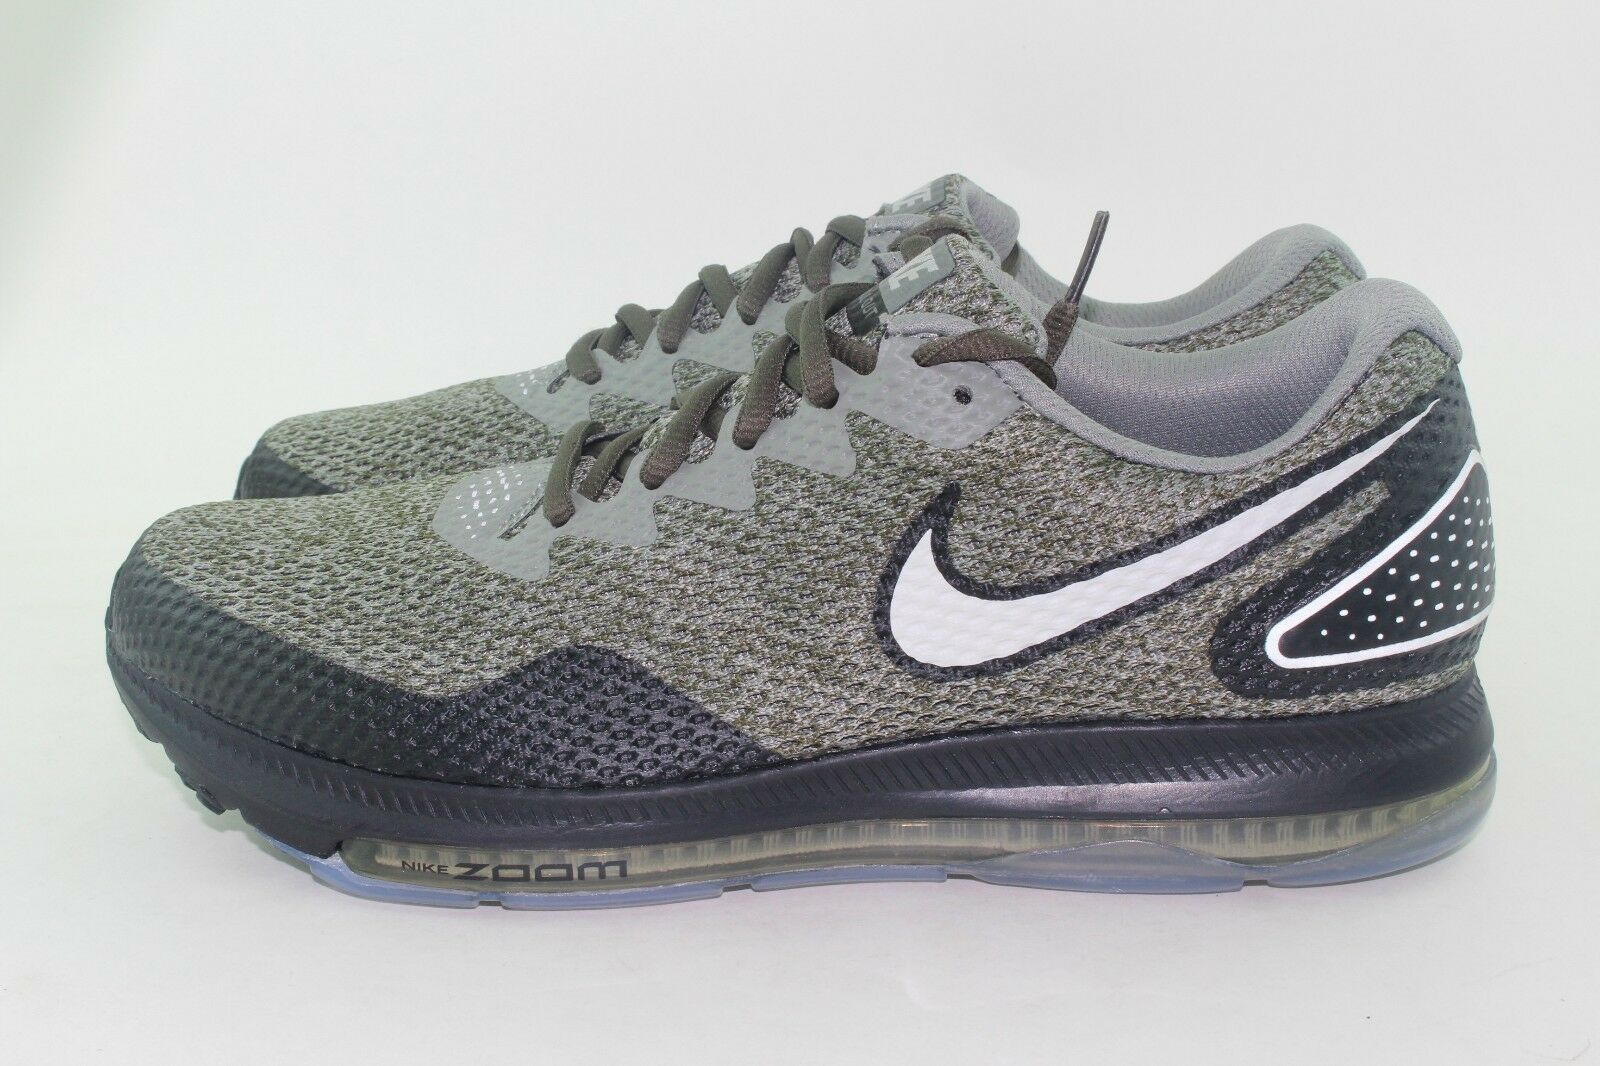 NIKE SIZE ZOOM ALL OUT LOW 2 MEN SIZE NIKE 10.5 KHAKI COMFORT RUNNING b07d98